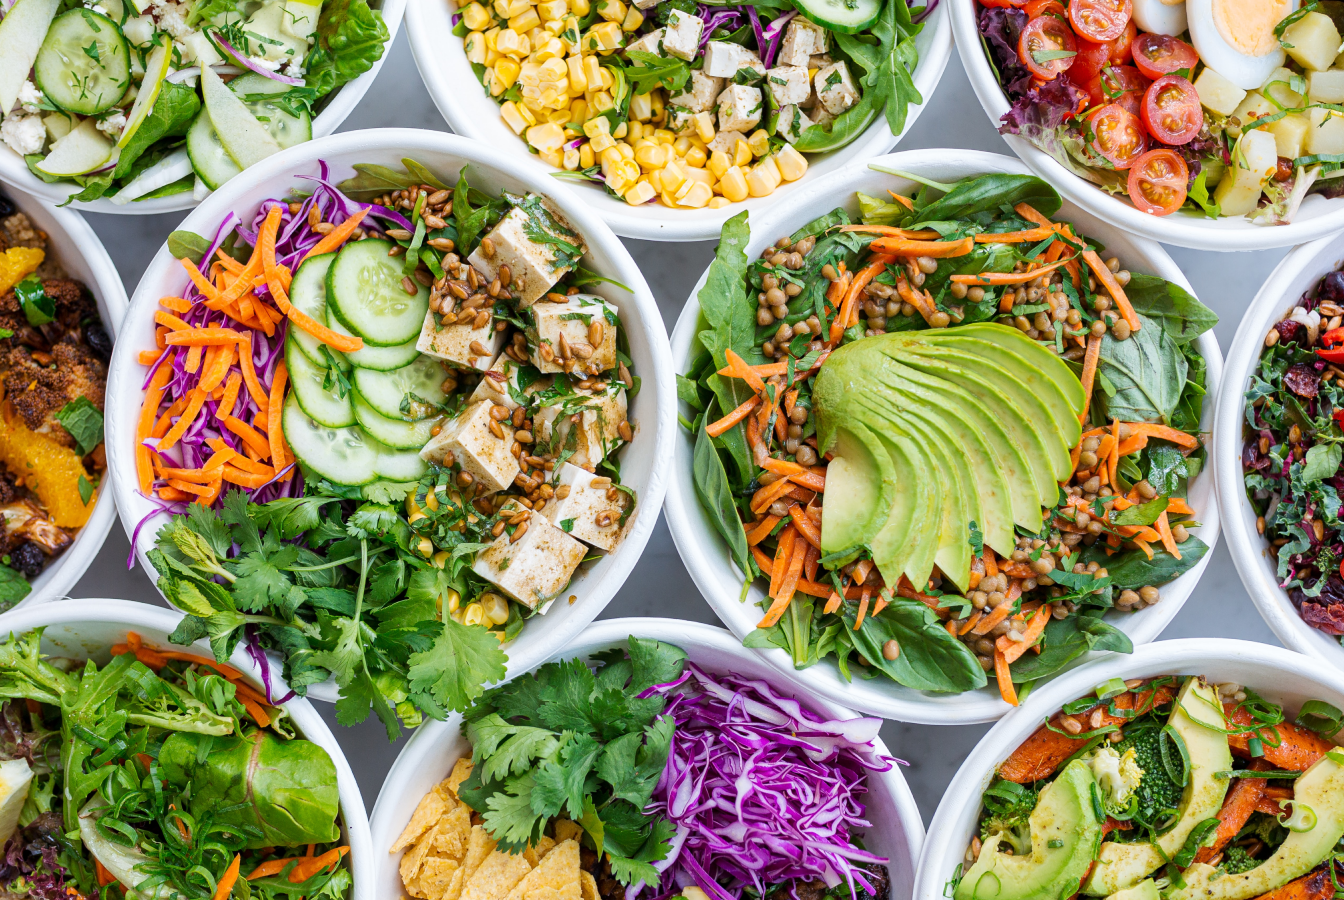 Top view of assorted vegetarian salads in bowls, all of which can be eaten as part of a plant-based diet.